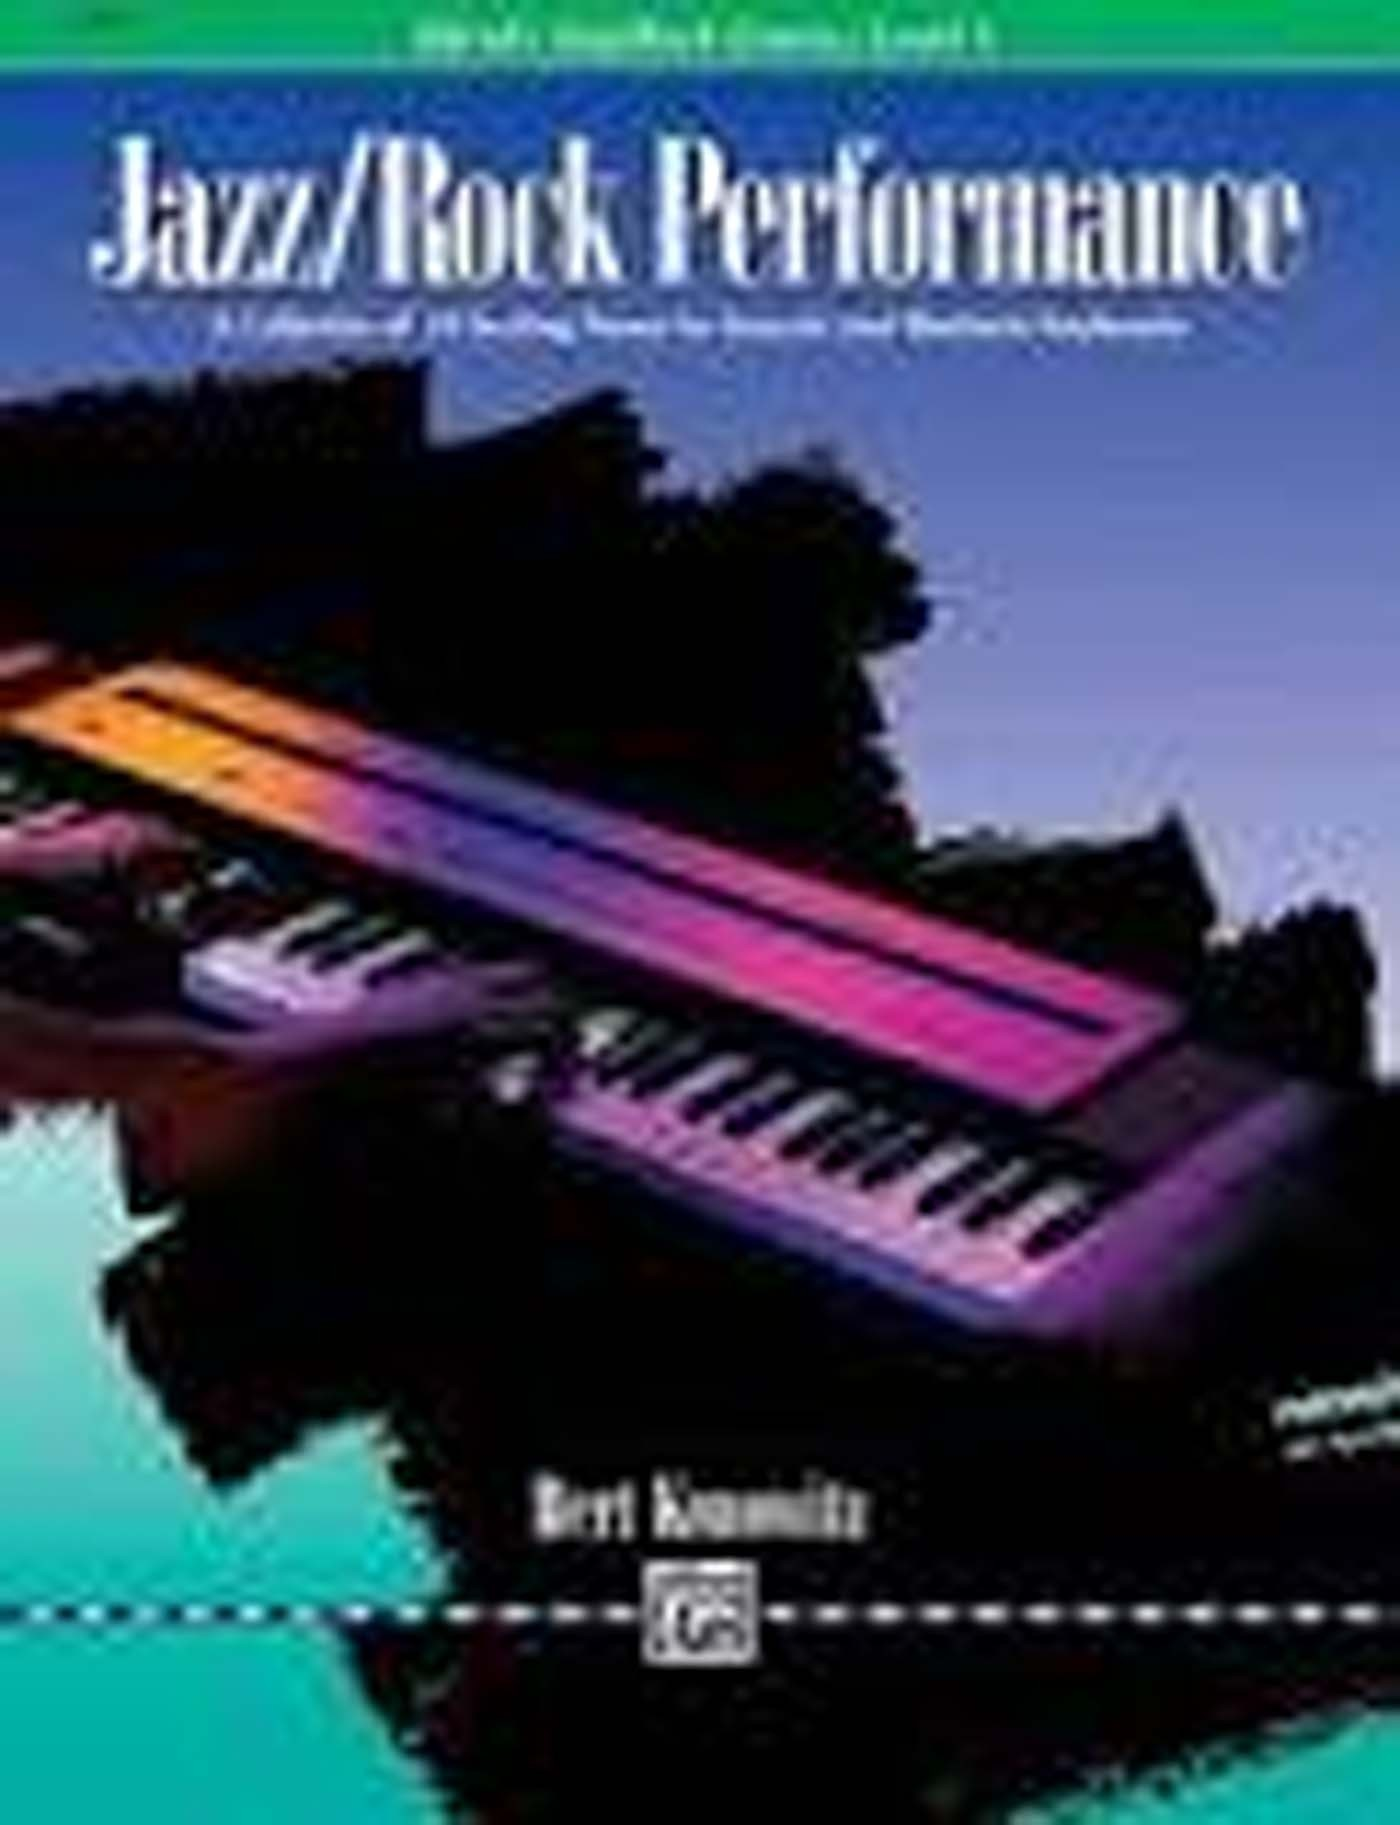 Alfred's Basic Piano Library Level 1 Book Jazz / Rock Performance Konowitz S98